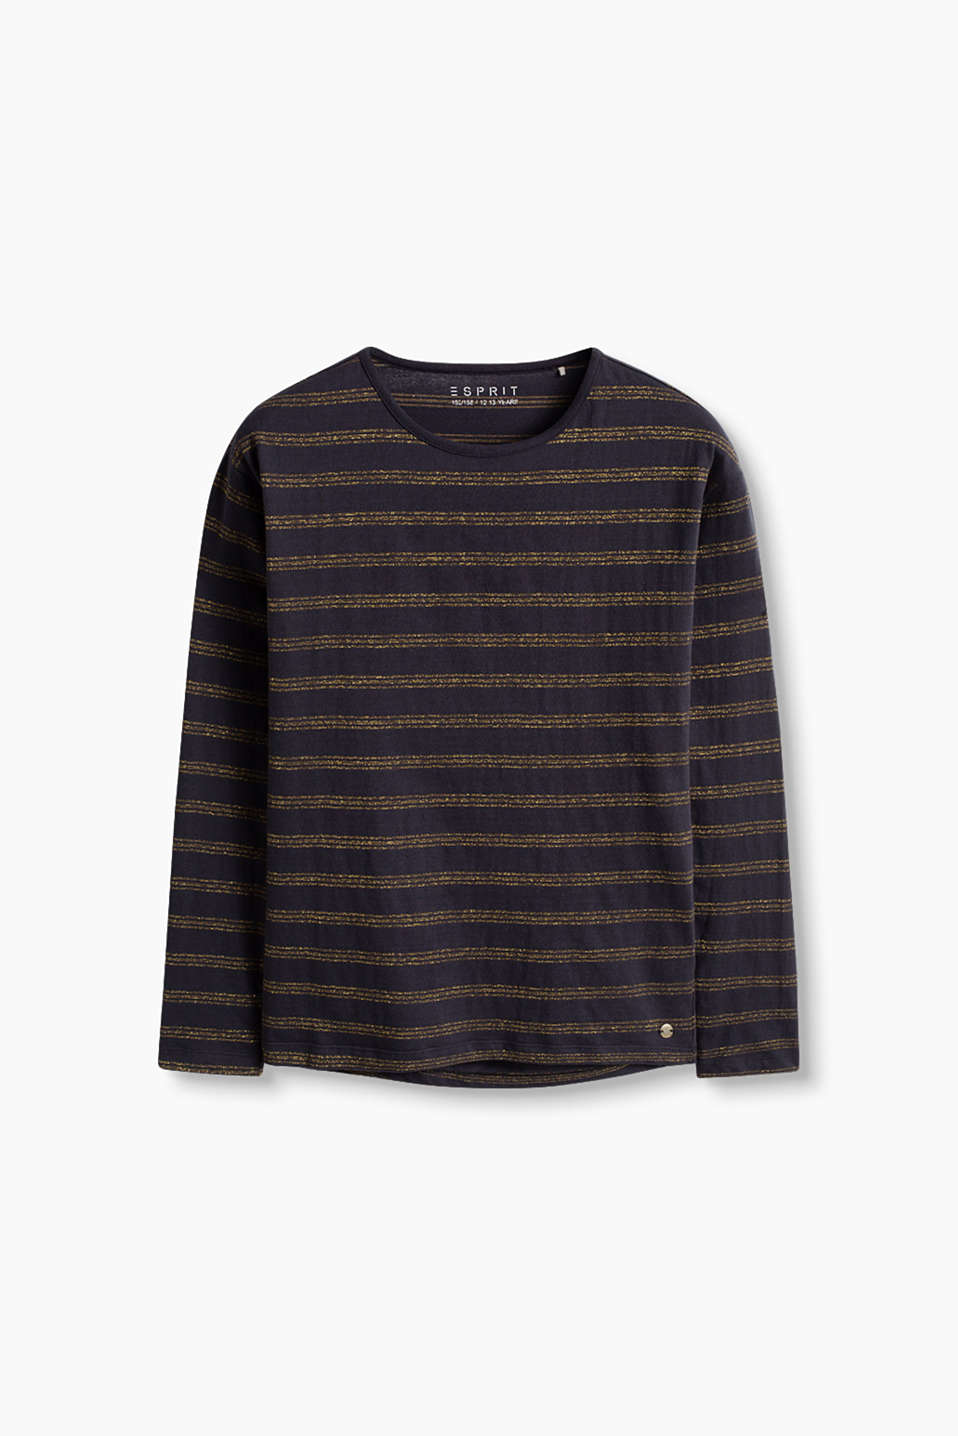 Cotton-jersey long sleeve top with a glittering stripe pattern